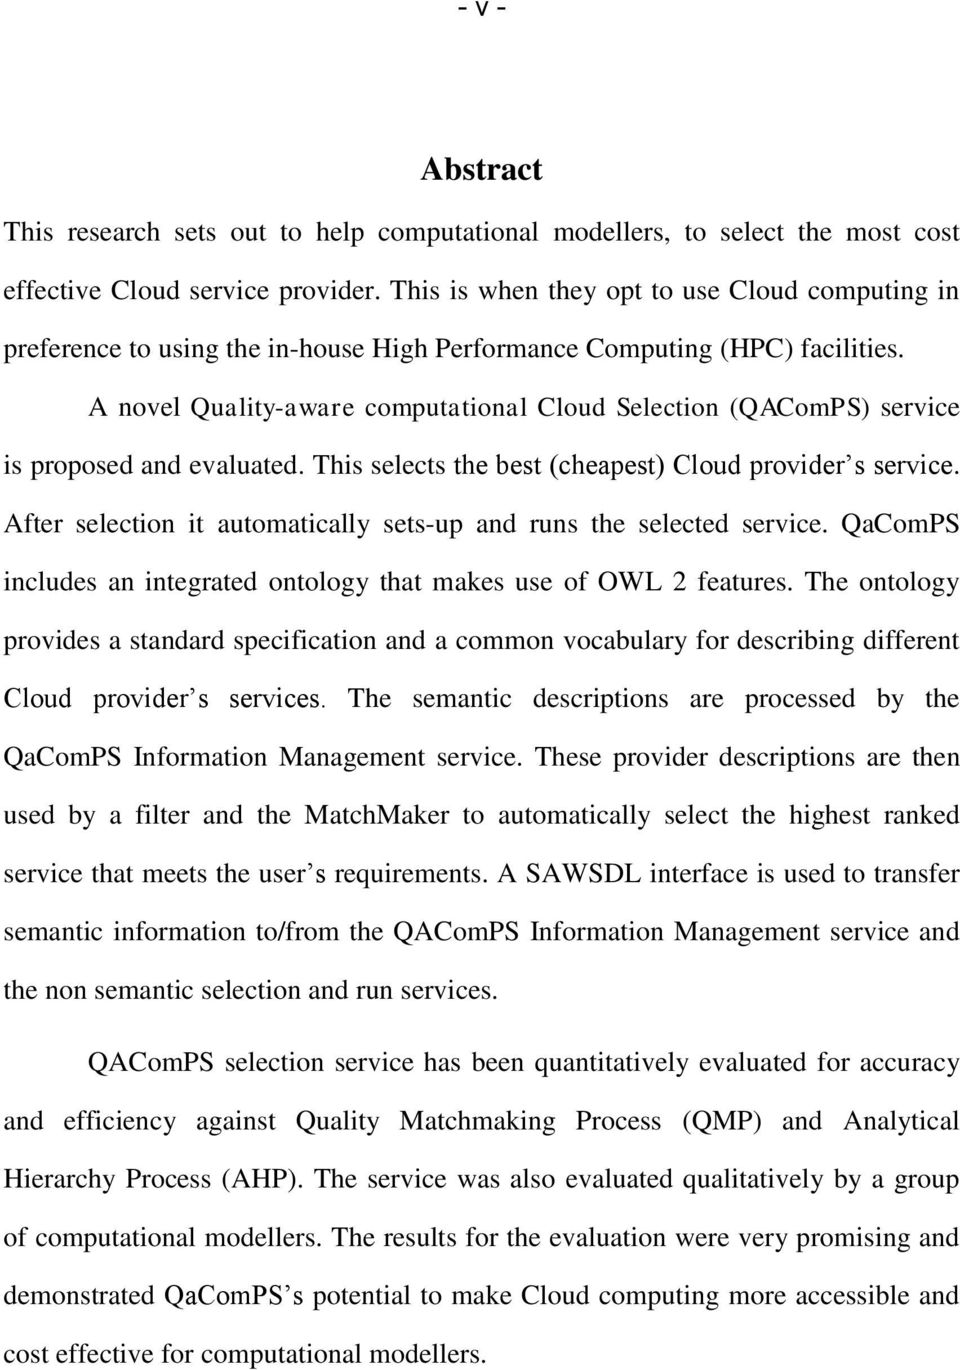 A novel Quality-aware computational Cloud Selection (QAComPS) service is proposed and evaluated. This selects the best (cheapest) Cloud provider s service.